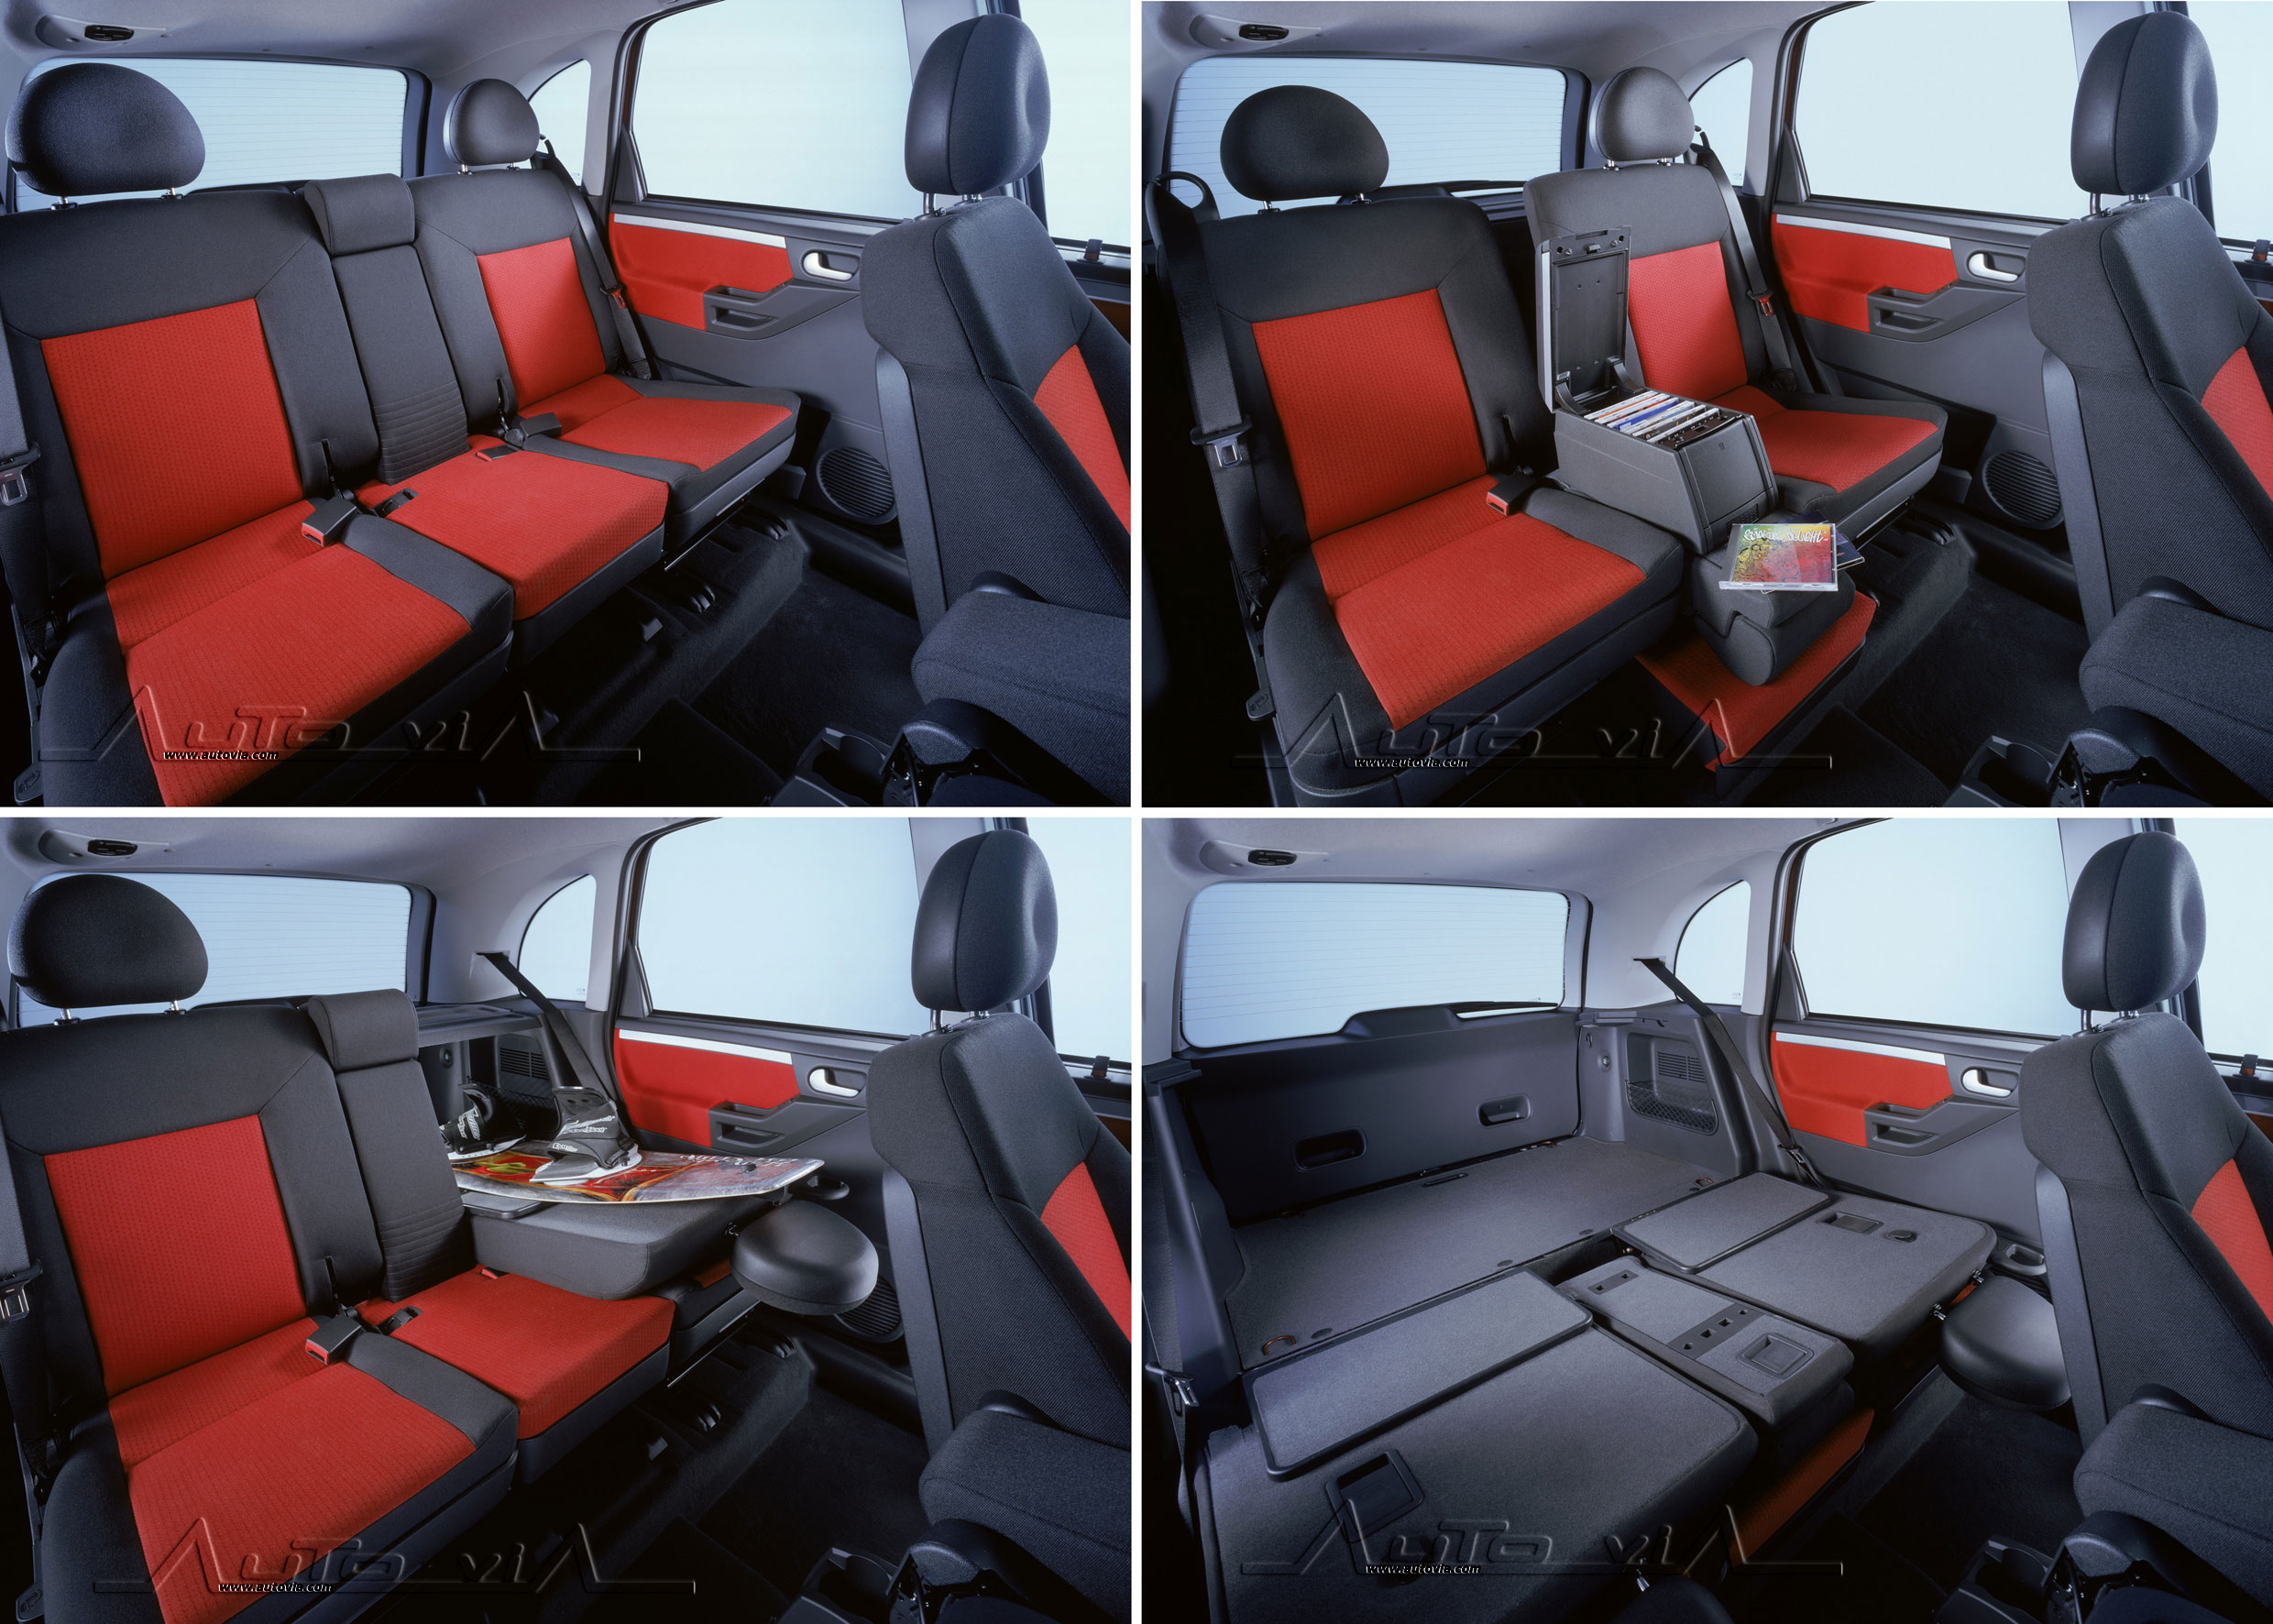 Opel meriva 7 flex space for What is flex space